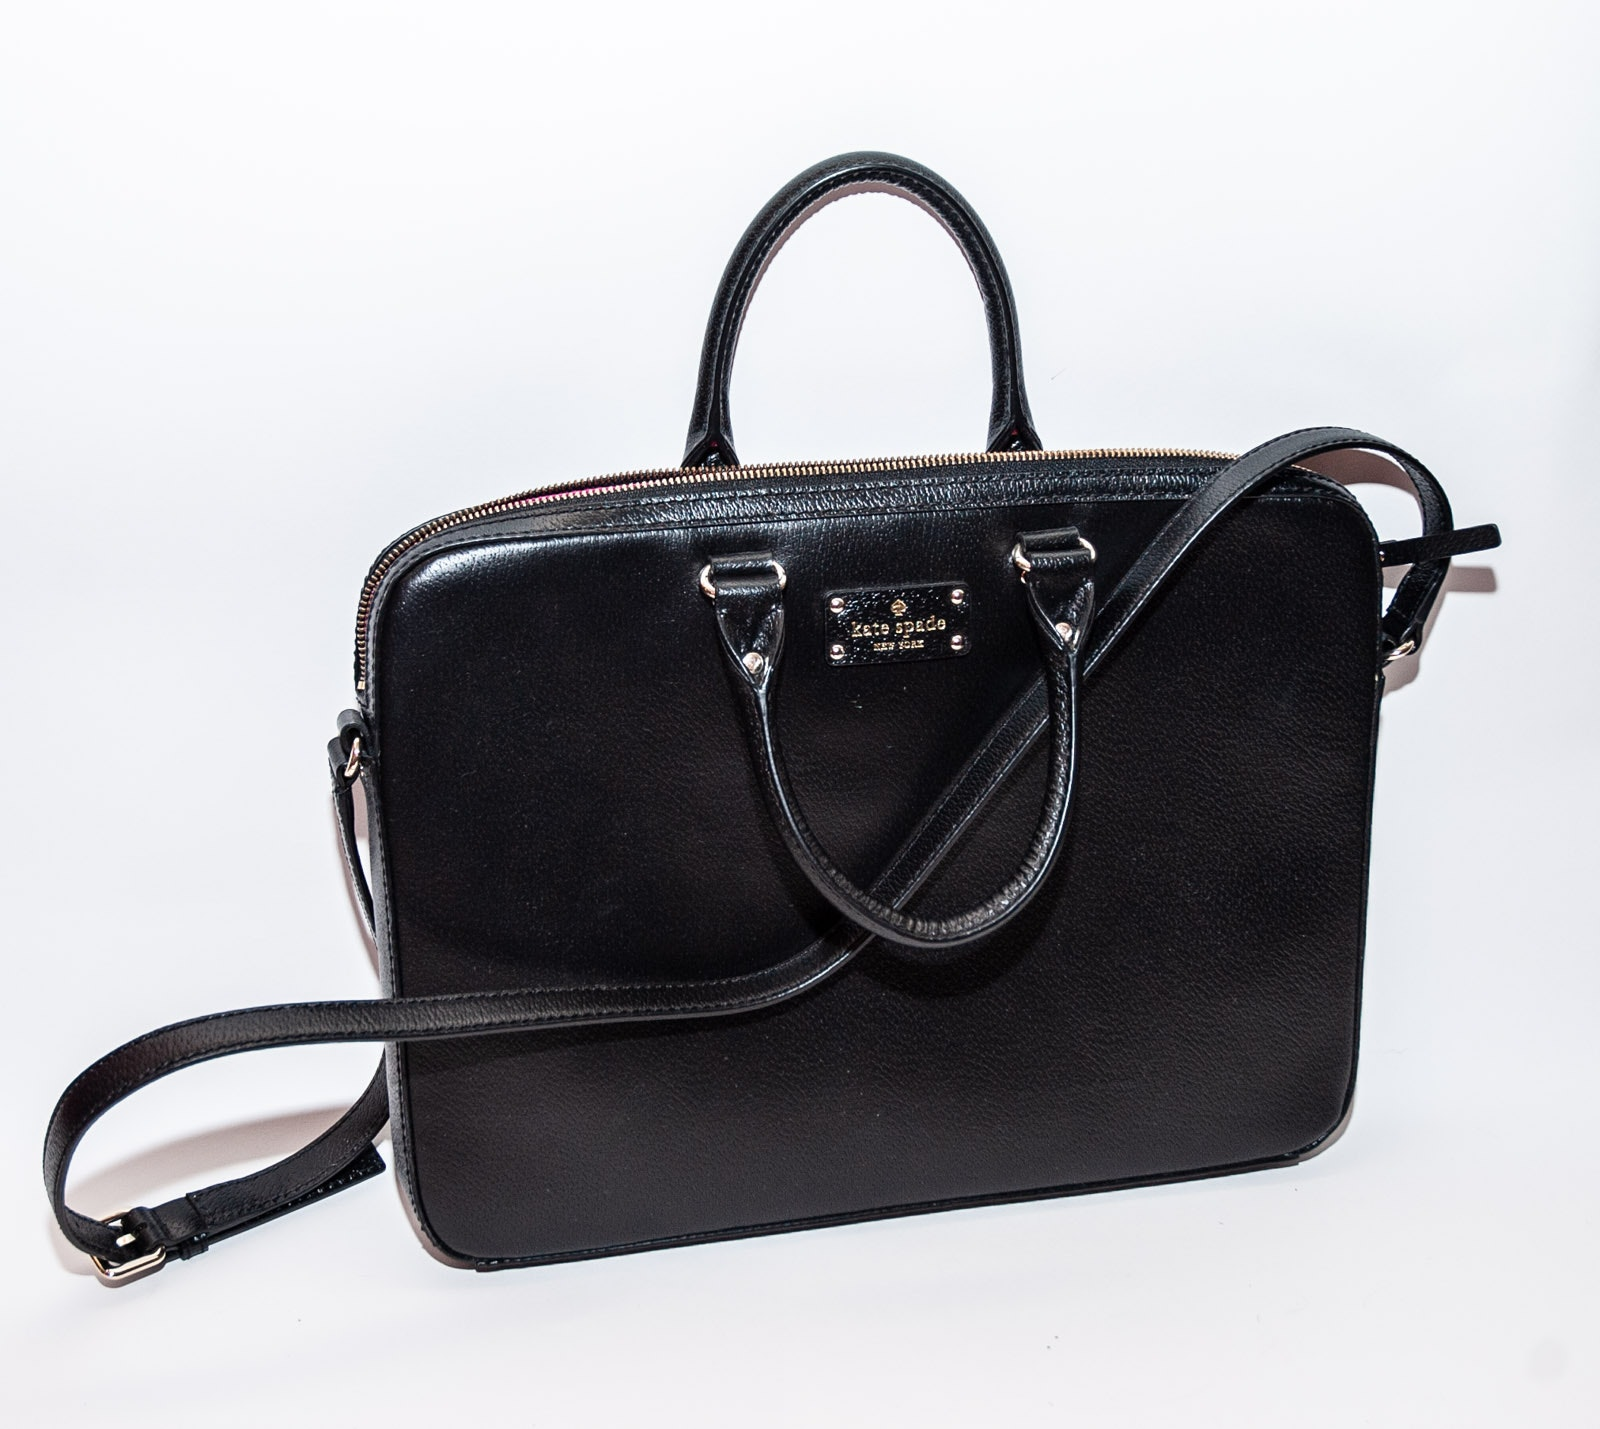 Kate Spade New York Black Leather Briefcase Bag